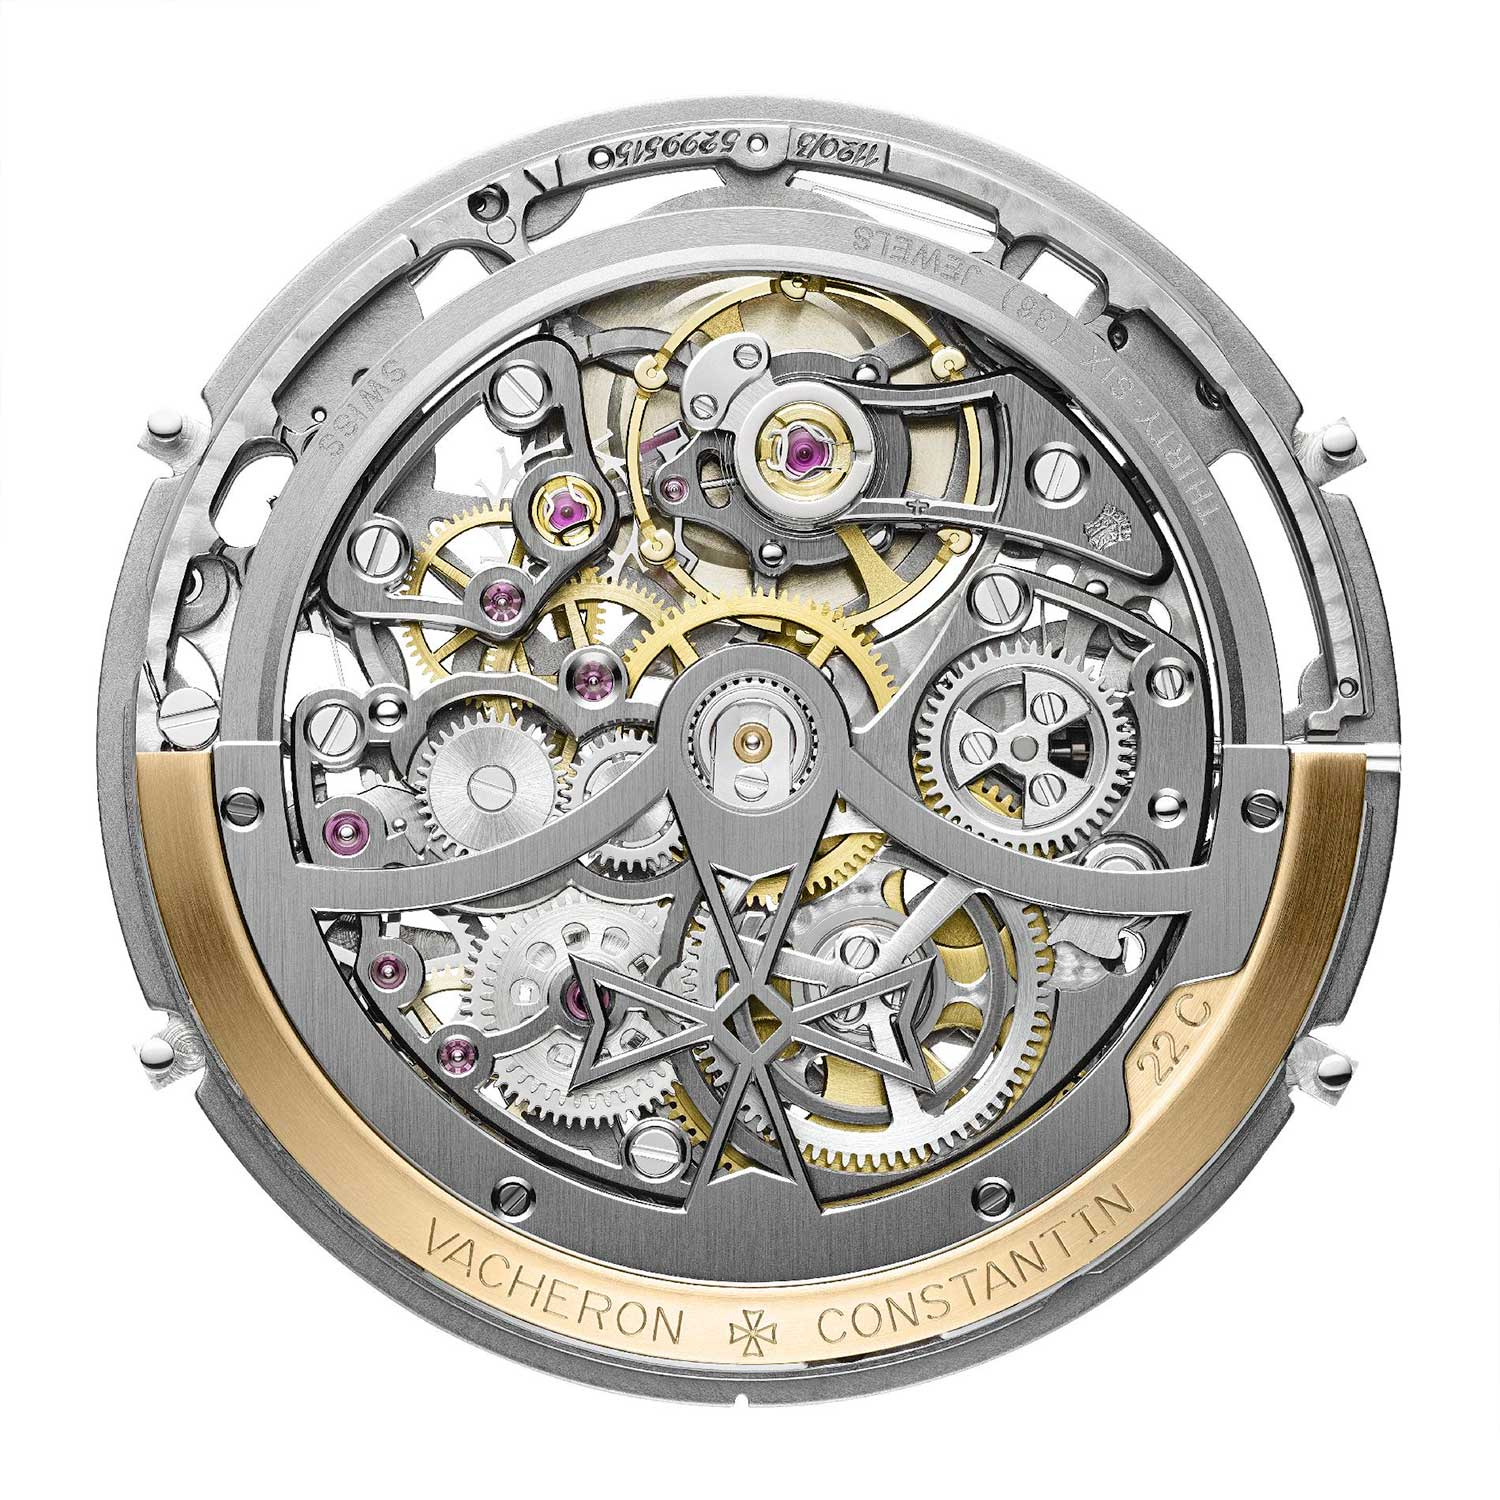 21.6mm diameter, 4.05mm thick; uncased rotor side view of the caliber 1120 QPSQ powering the 2020 41.5mm Overseas Perpetual Calendar Ultra-Thin Skeleton ref. 4300V/120R-B547